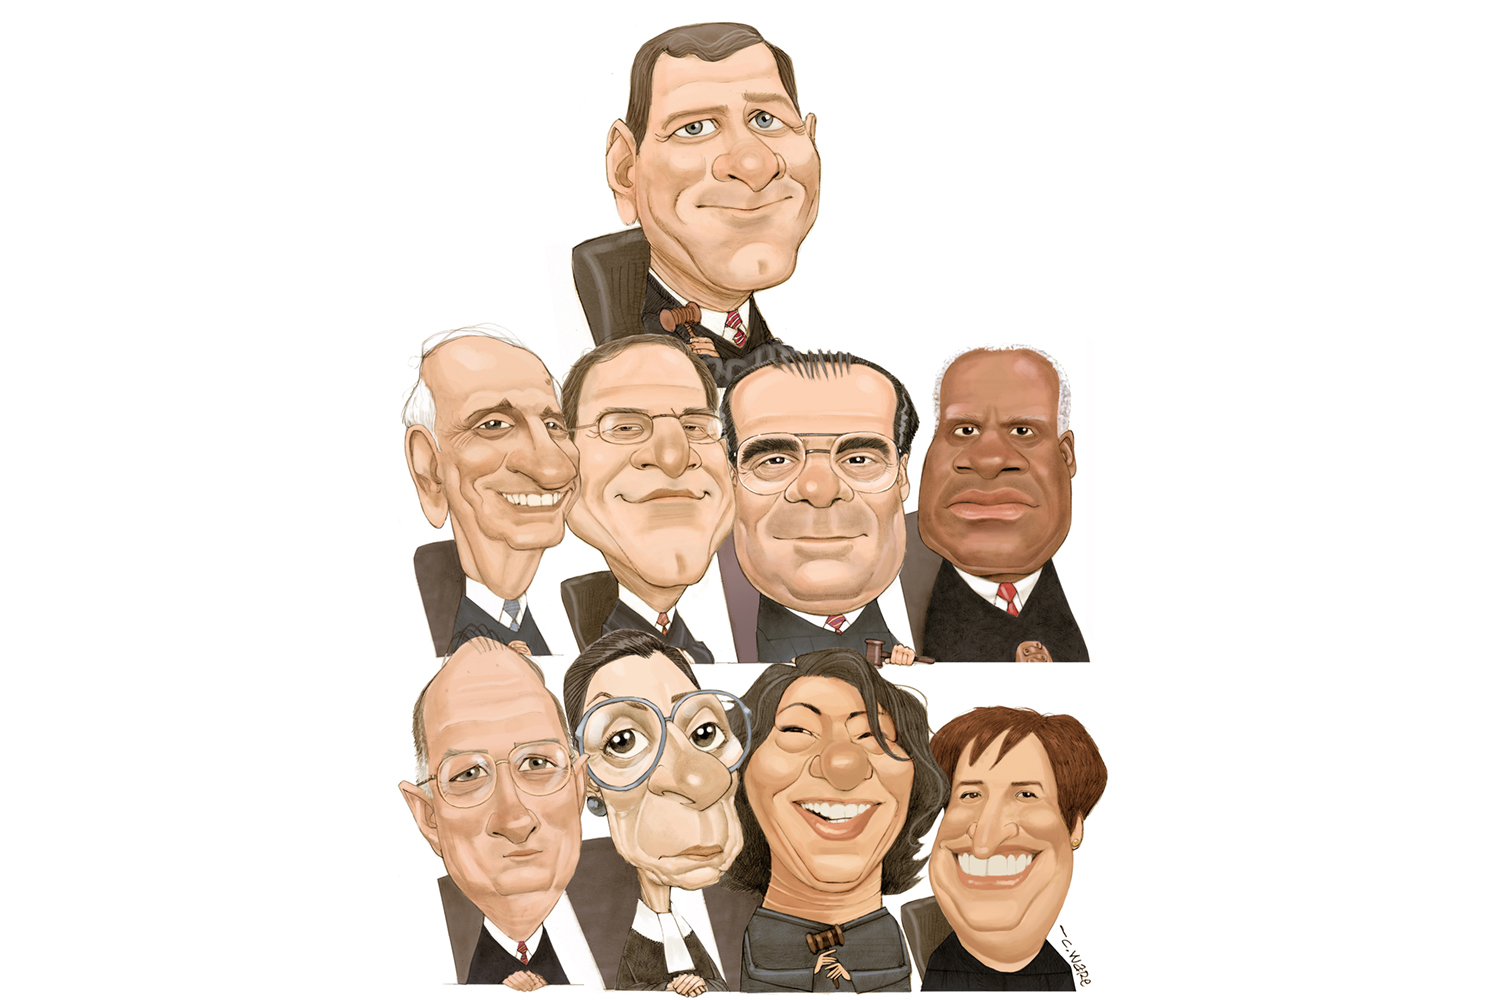 Chris Ware color caricature montage of all nine U.S. Supreme Court Justices (from top, then left, John Roberts, Stephen Breyer, Samuel Alito, Antonin Scalia, Clarence Thomas, Anthony Kennedy, Ruth Bader Ginsberg, Sonia Sotamayor, Elena Kagan). MCT 2011